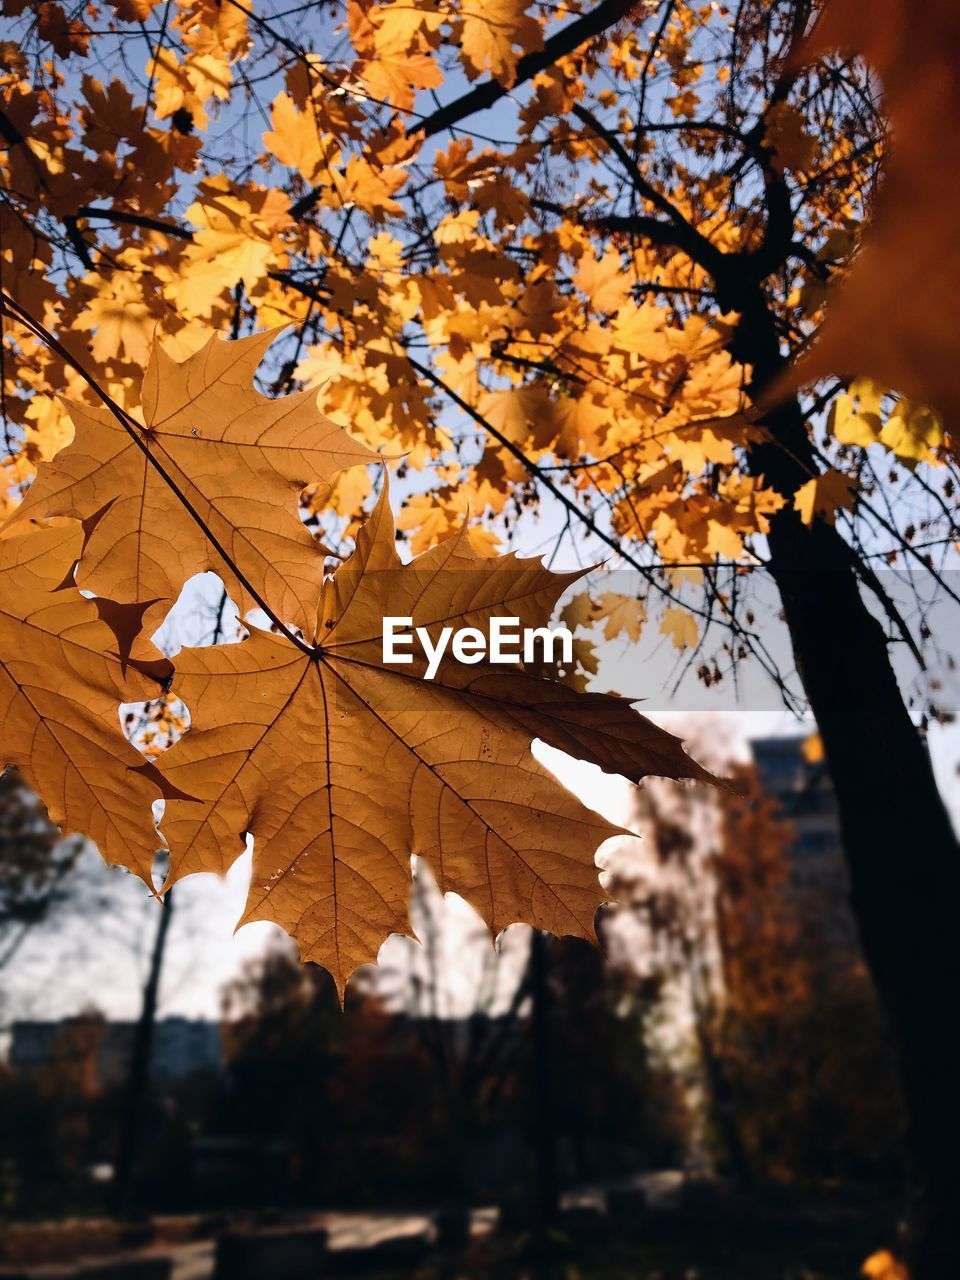 autumn, change, tree, plant part, leaf, plant, branch, orange color, nature, focus on foreground, day, maple leaf, leaves, no people, outdoors, beauty in nature, close-up, growth, sunlight, maple tree, natural condition, autumn collection, fall